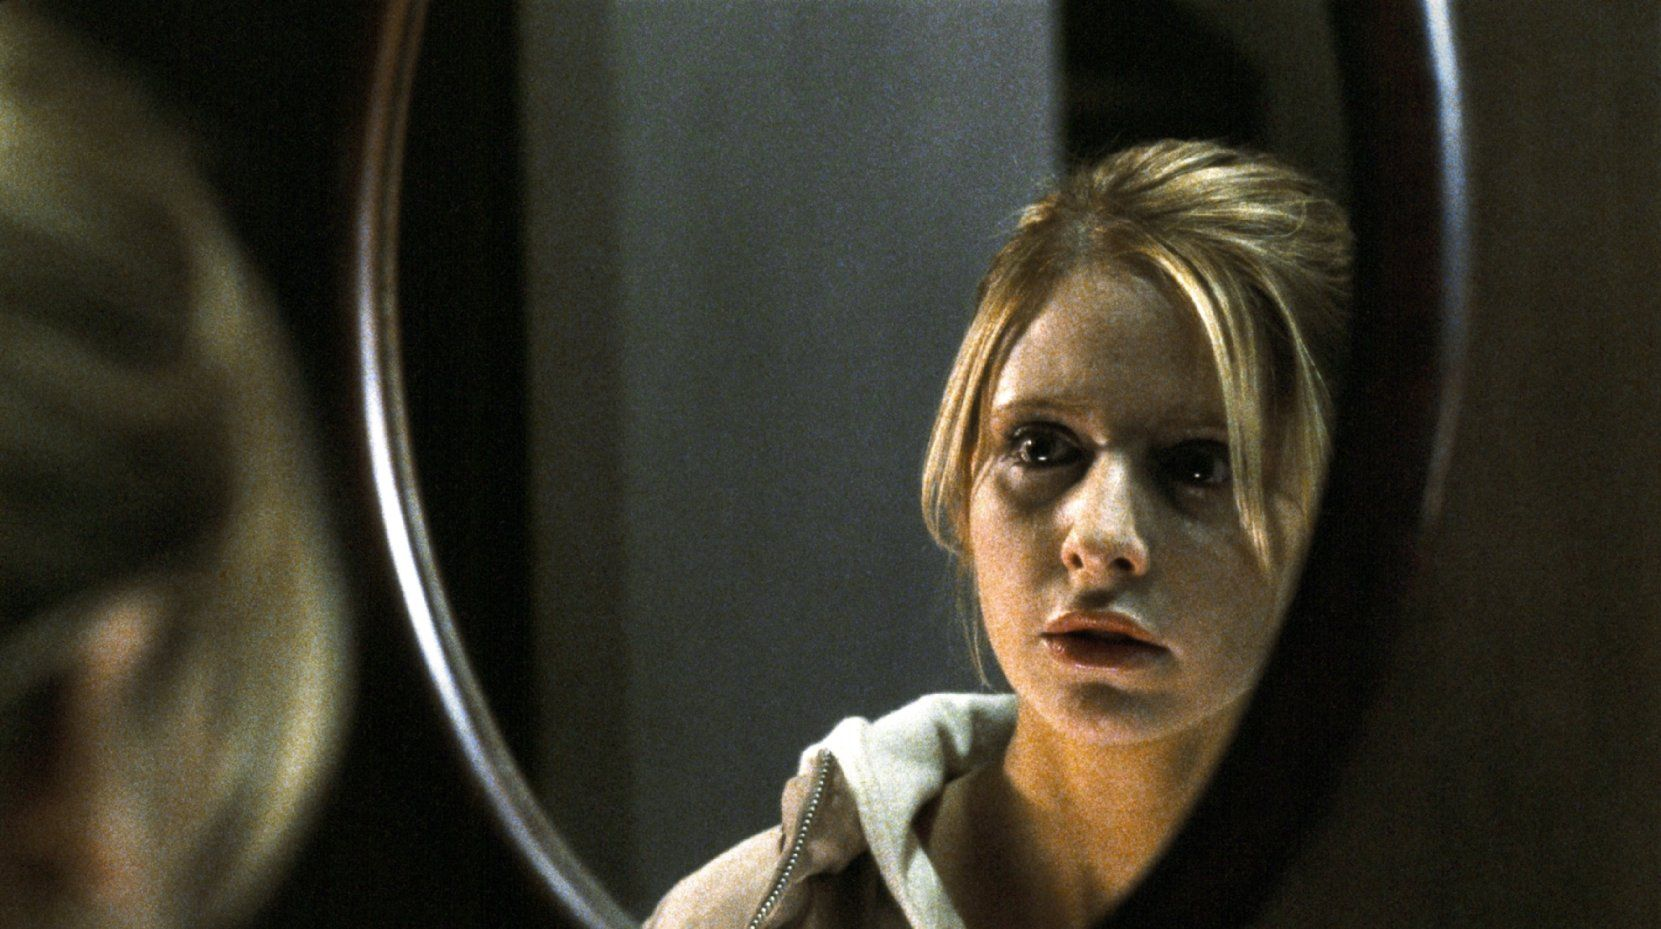 Karen Davis (Sarah Michelle Gellar) encounters spooky happenings in Japan in The Grudge (2004)